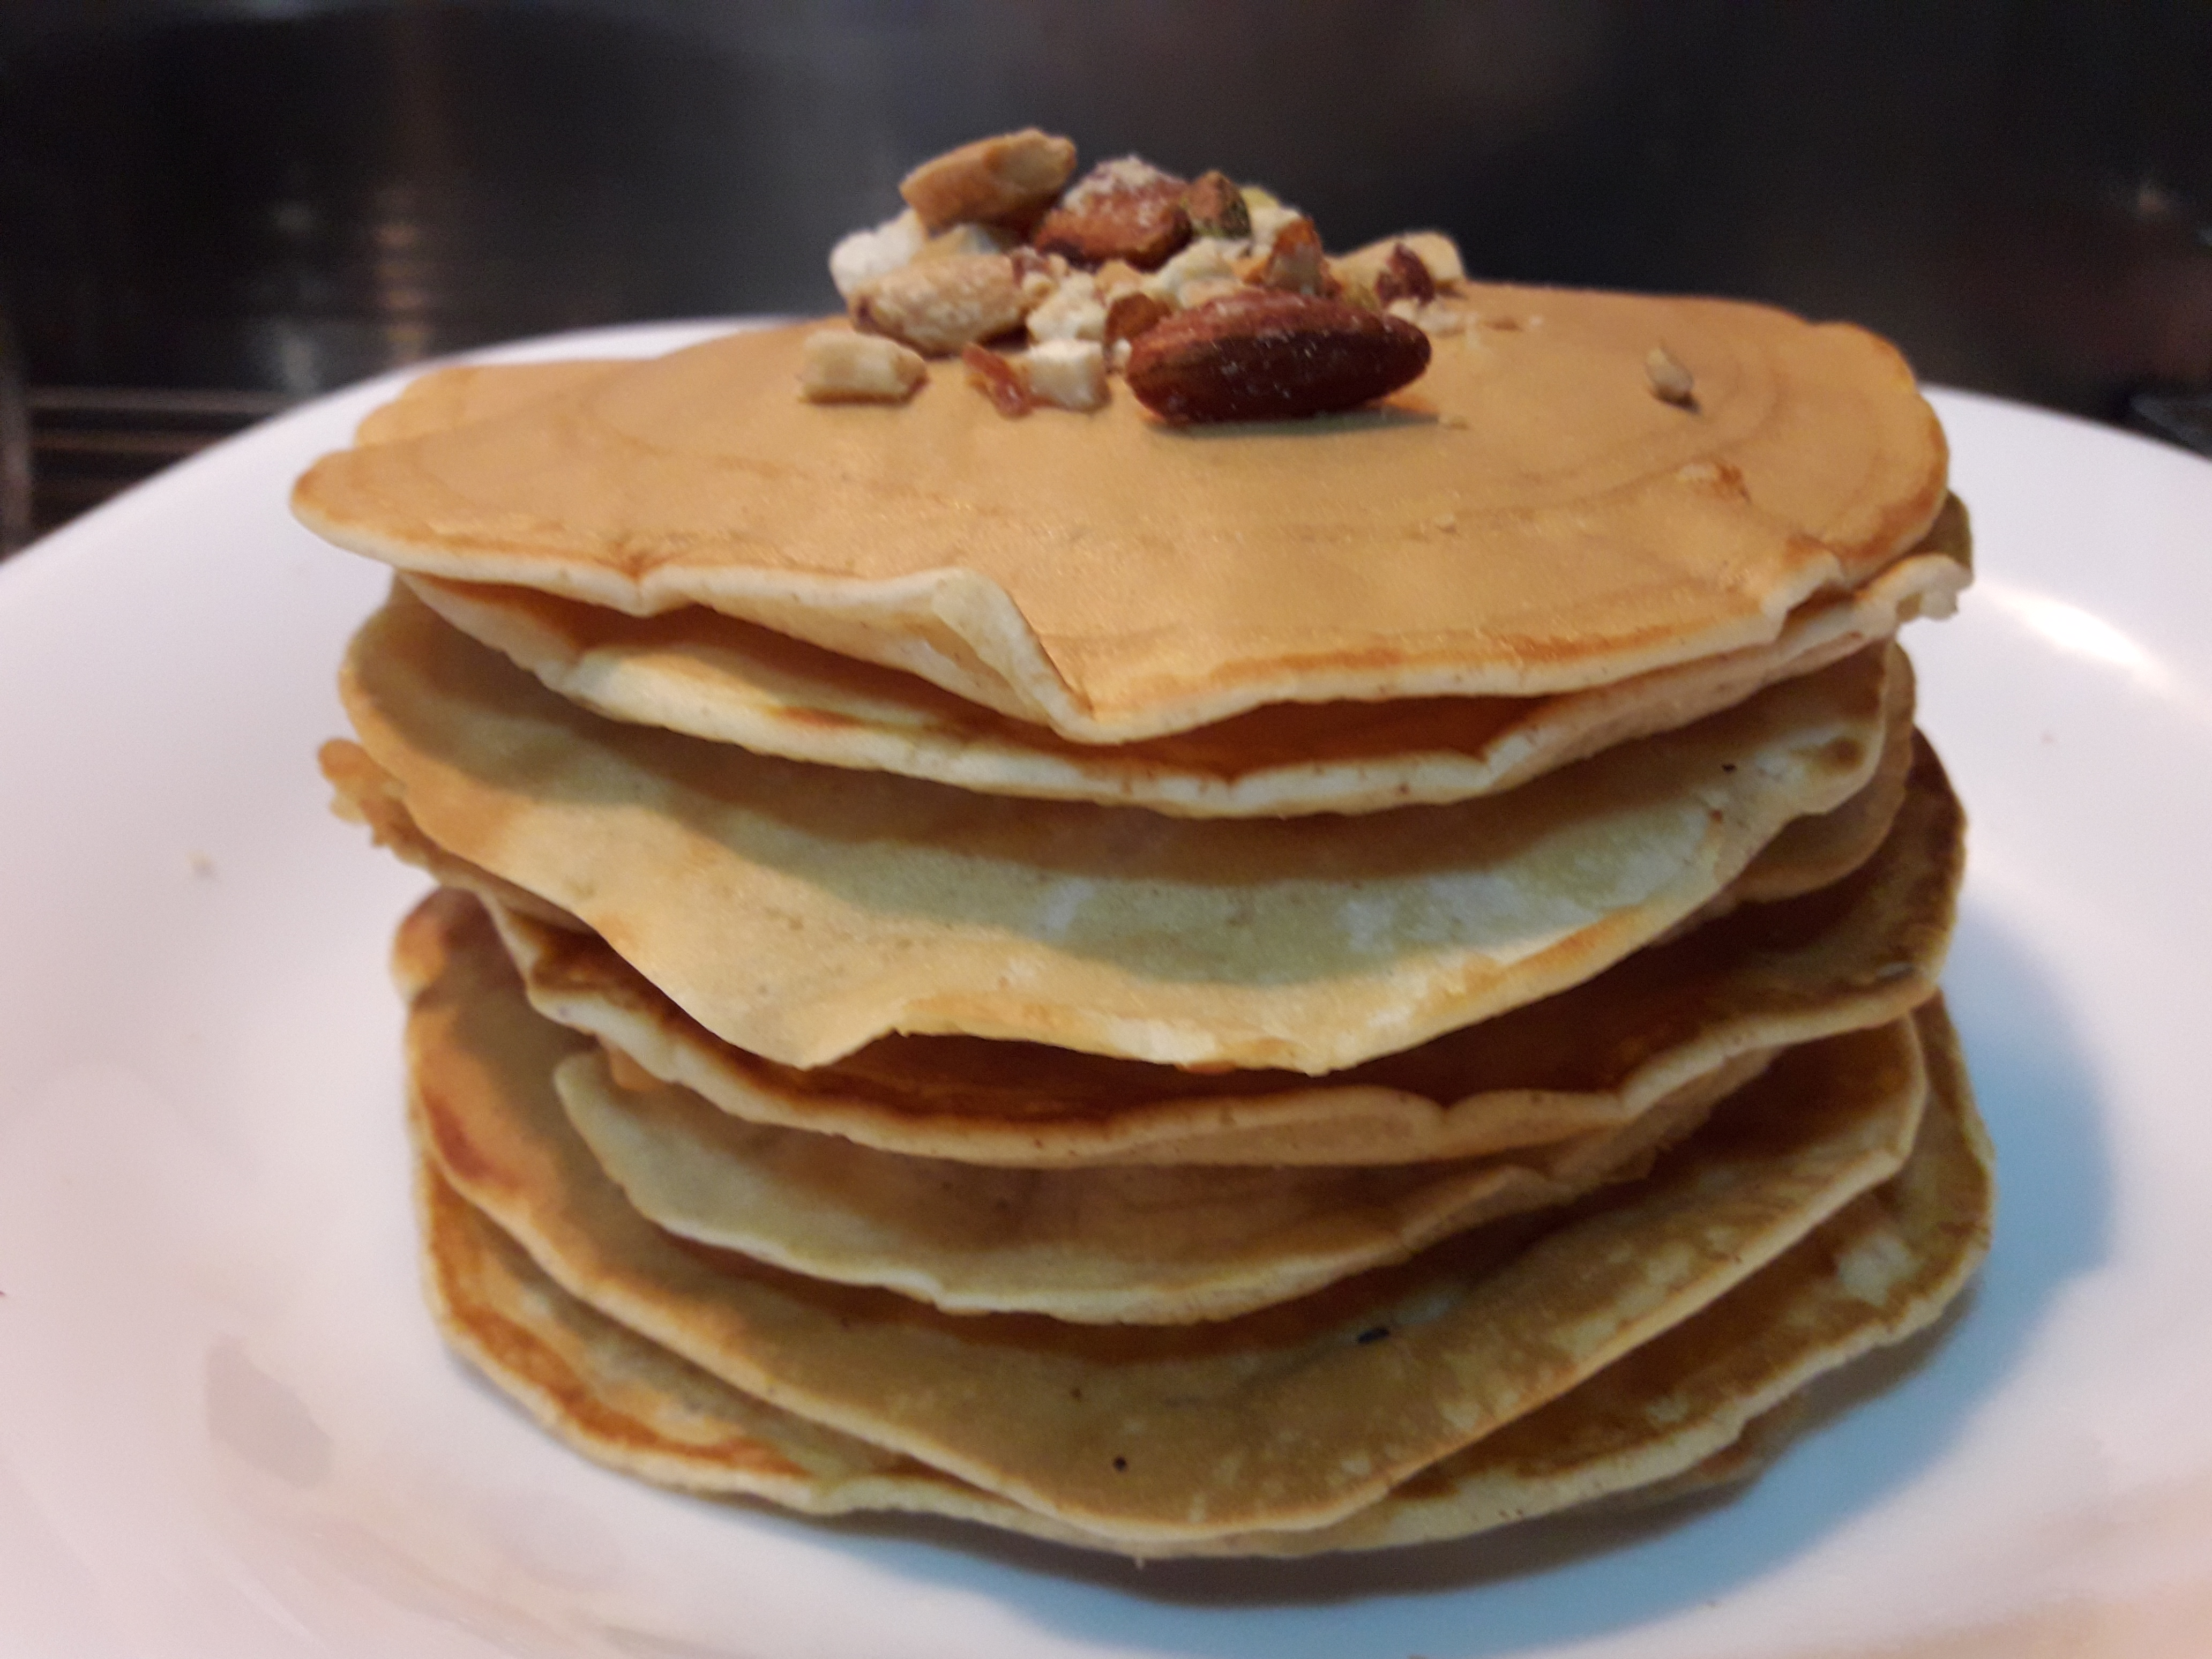 Fluffy pancakes recipe genius kitchen however i did not get a lot of rise from the pancakes so they were slightly more chewy than fluffy my family liked it though ccuart Choice Image